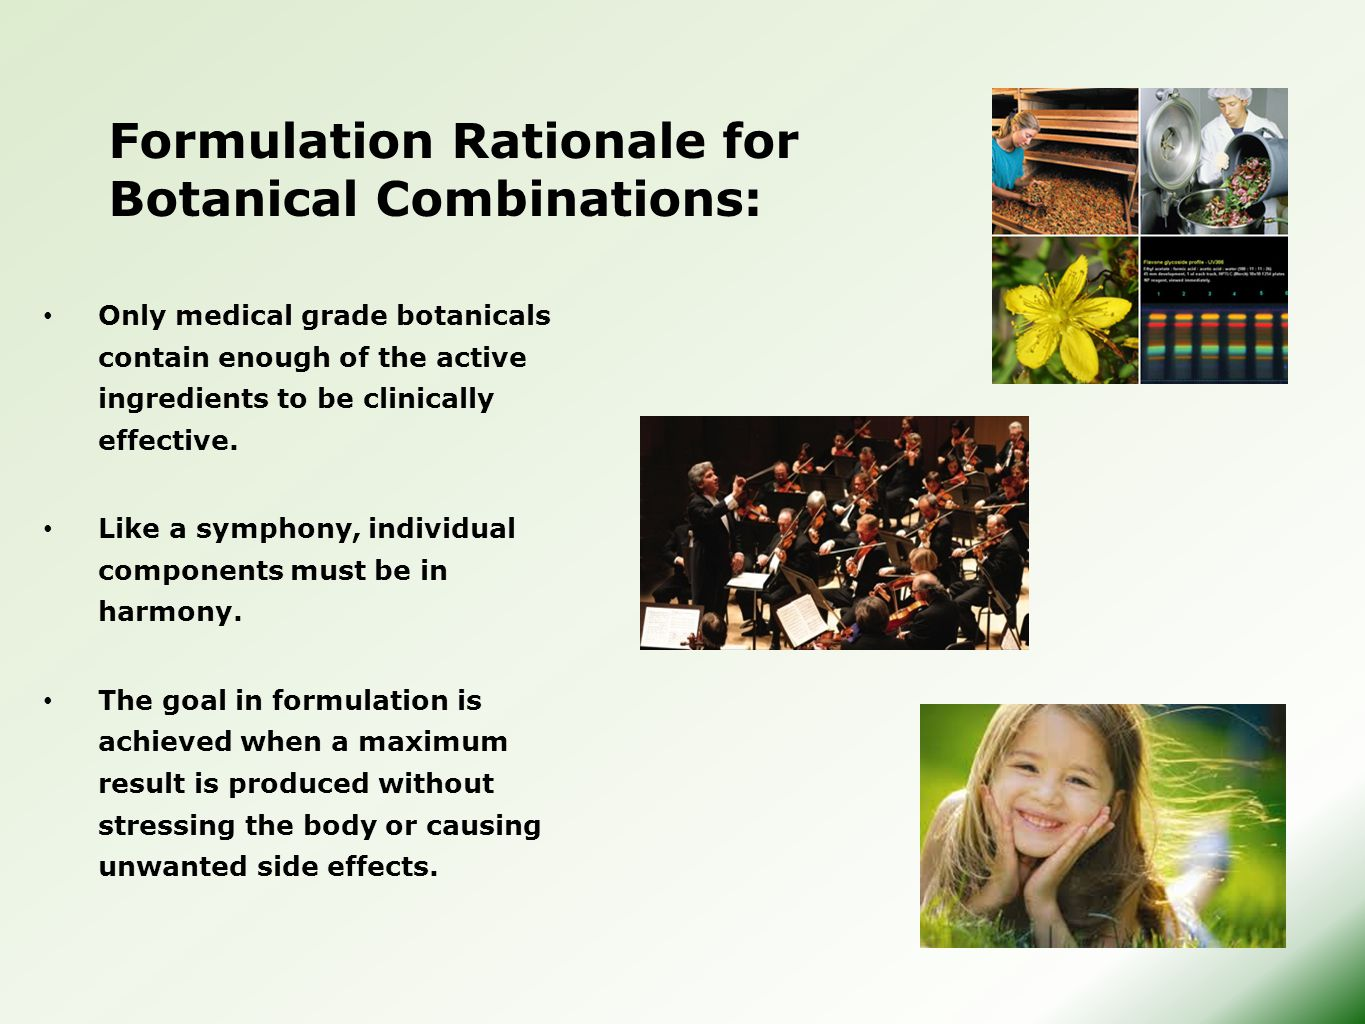 Formulation Rationale for Botanical Combinations: Only medical grade botanicals contain enough of the active ingredients to be clinically effective.